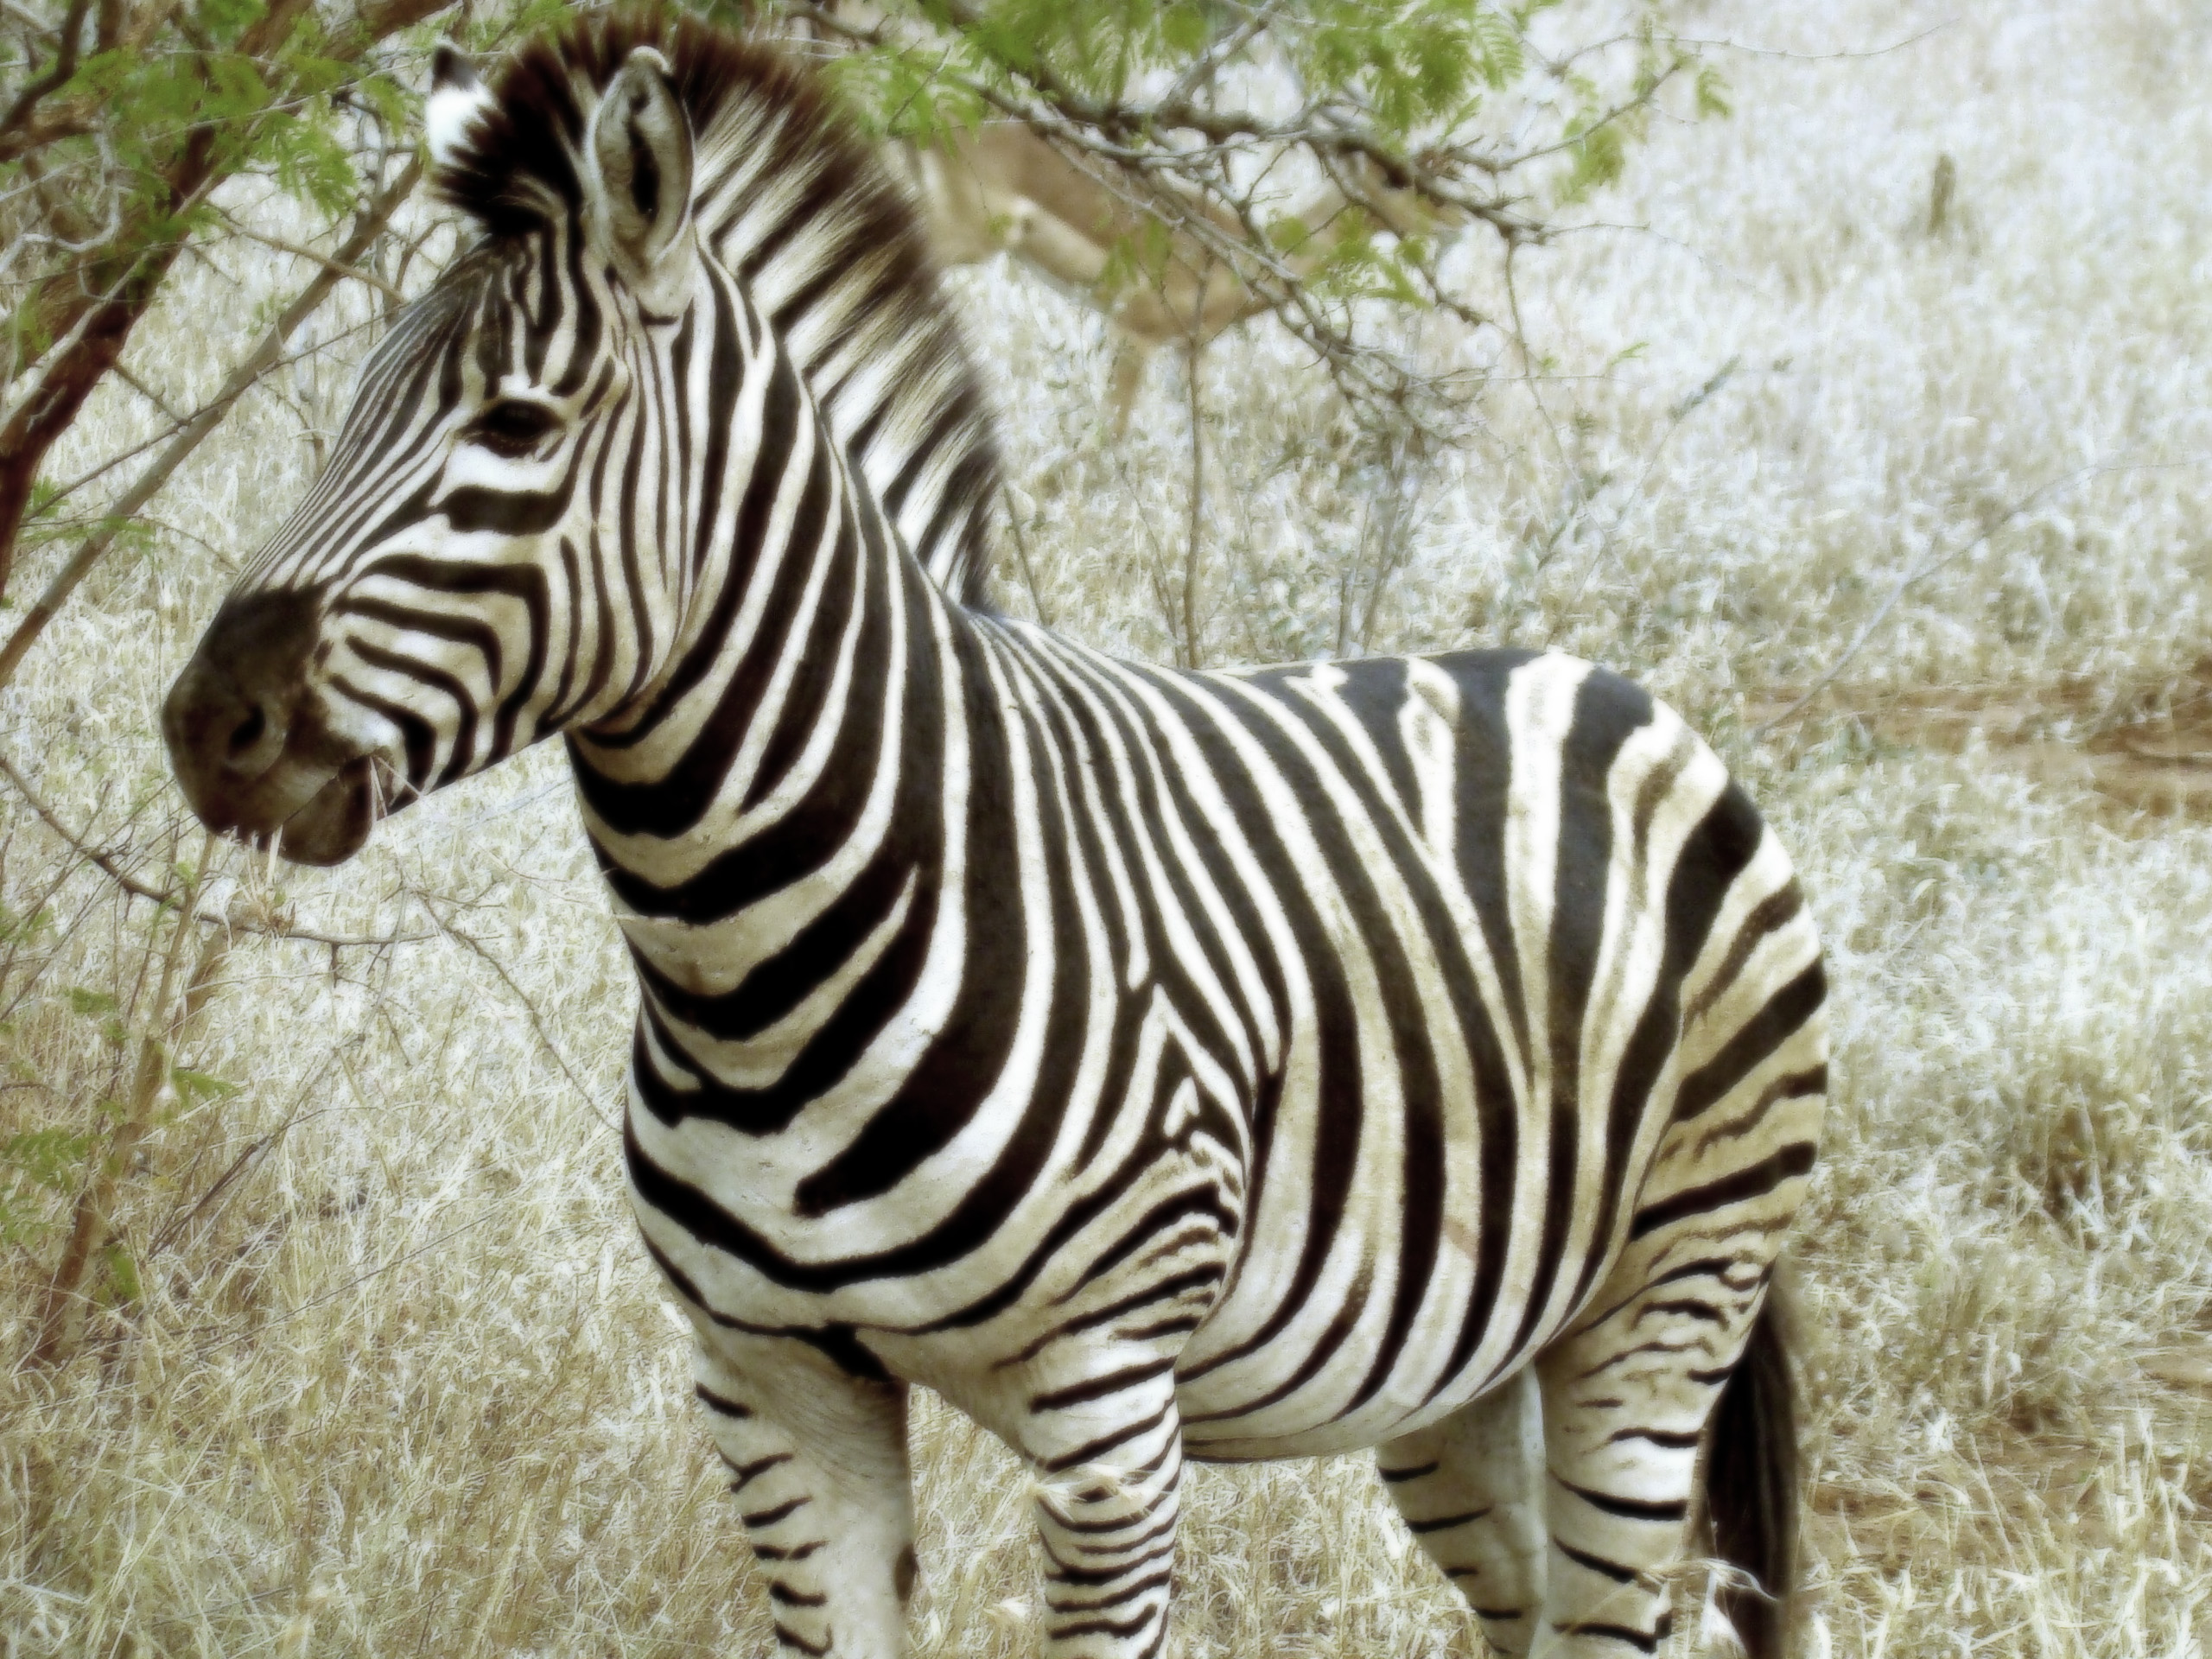 Rainbow Zebra Wallpaper - WallpaperSafari